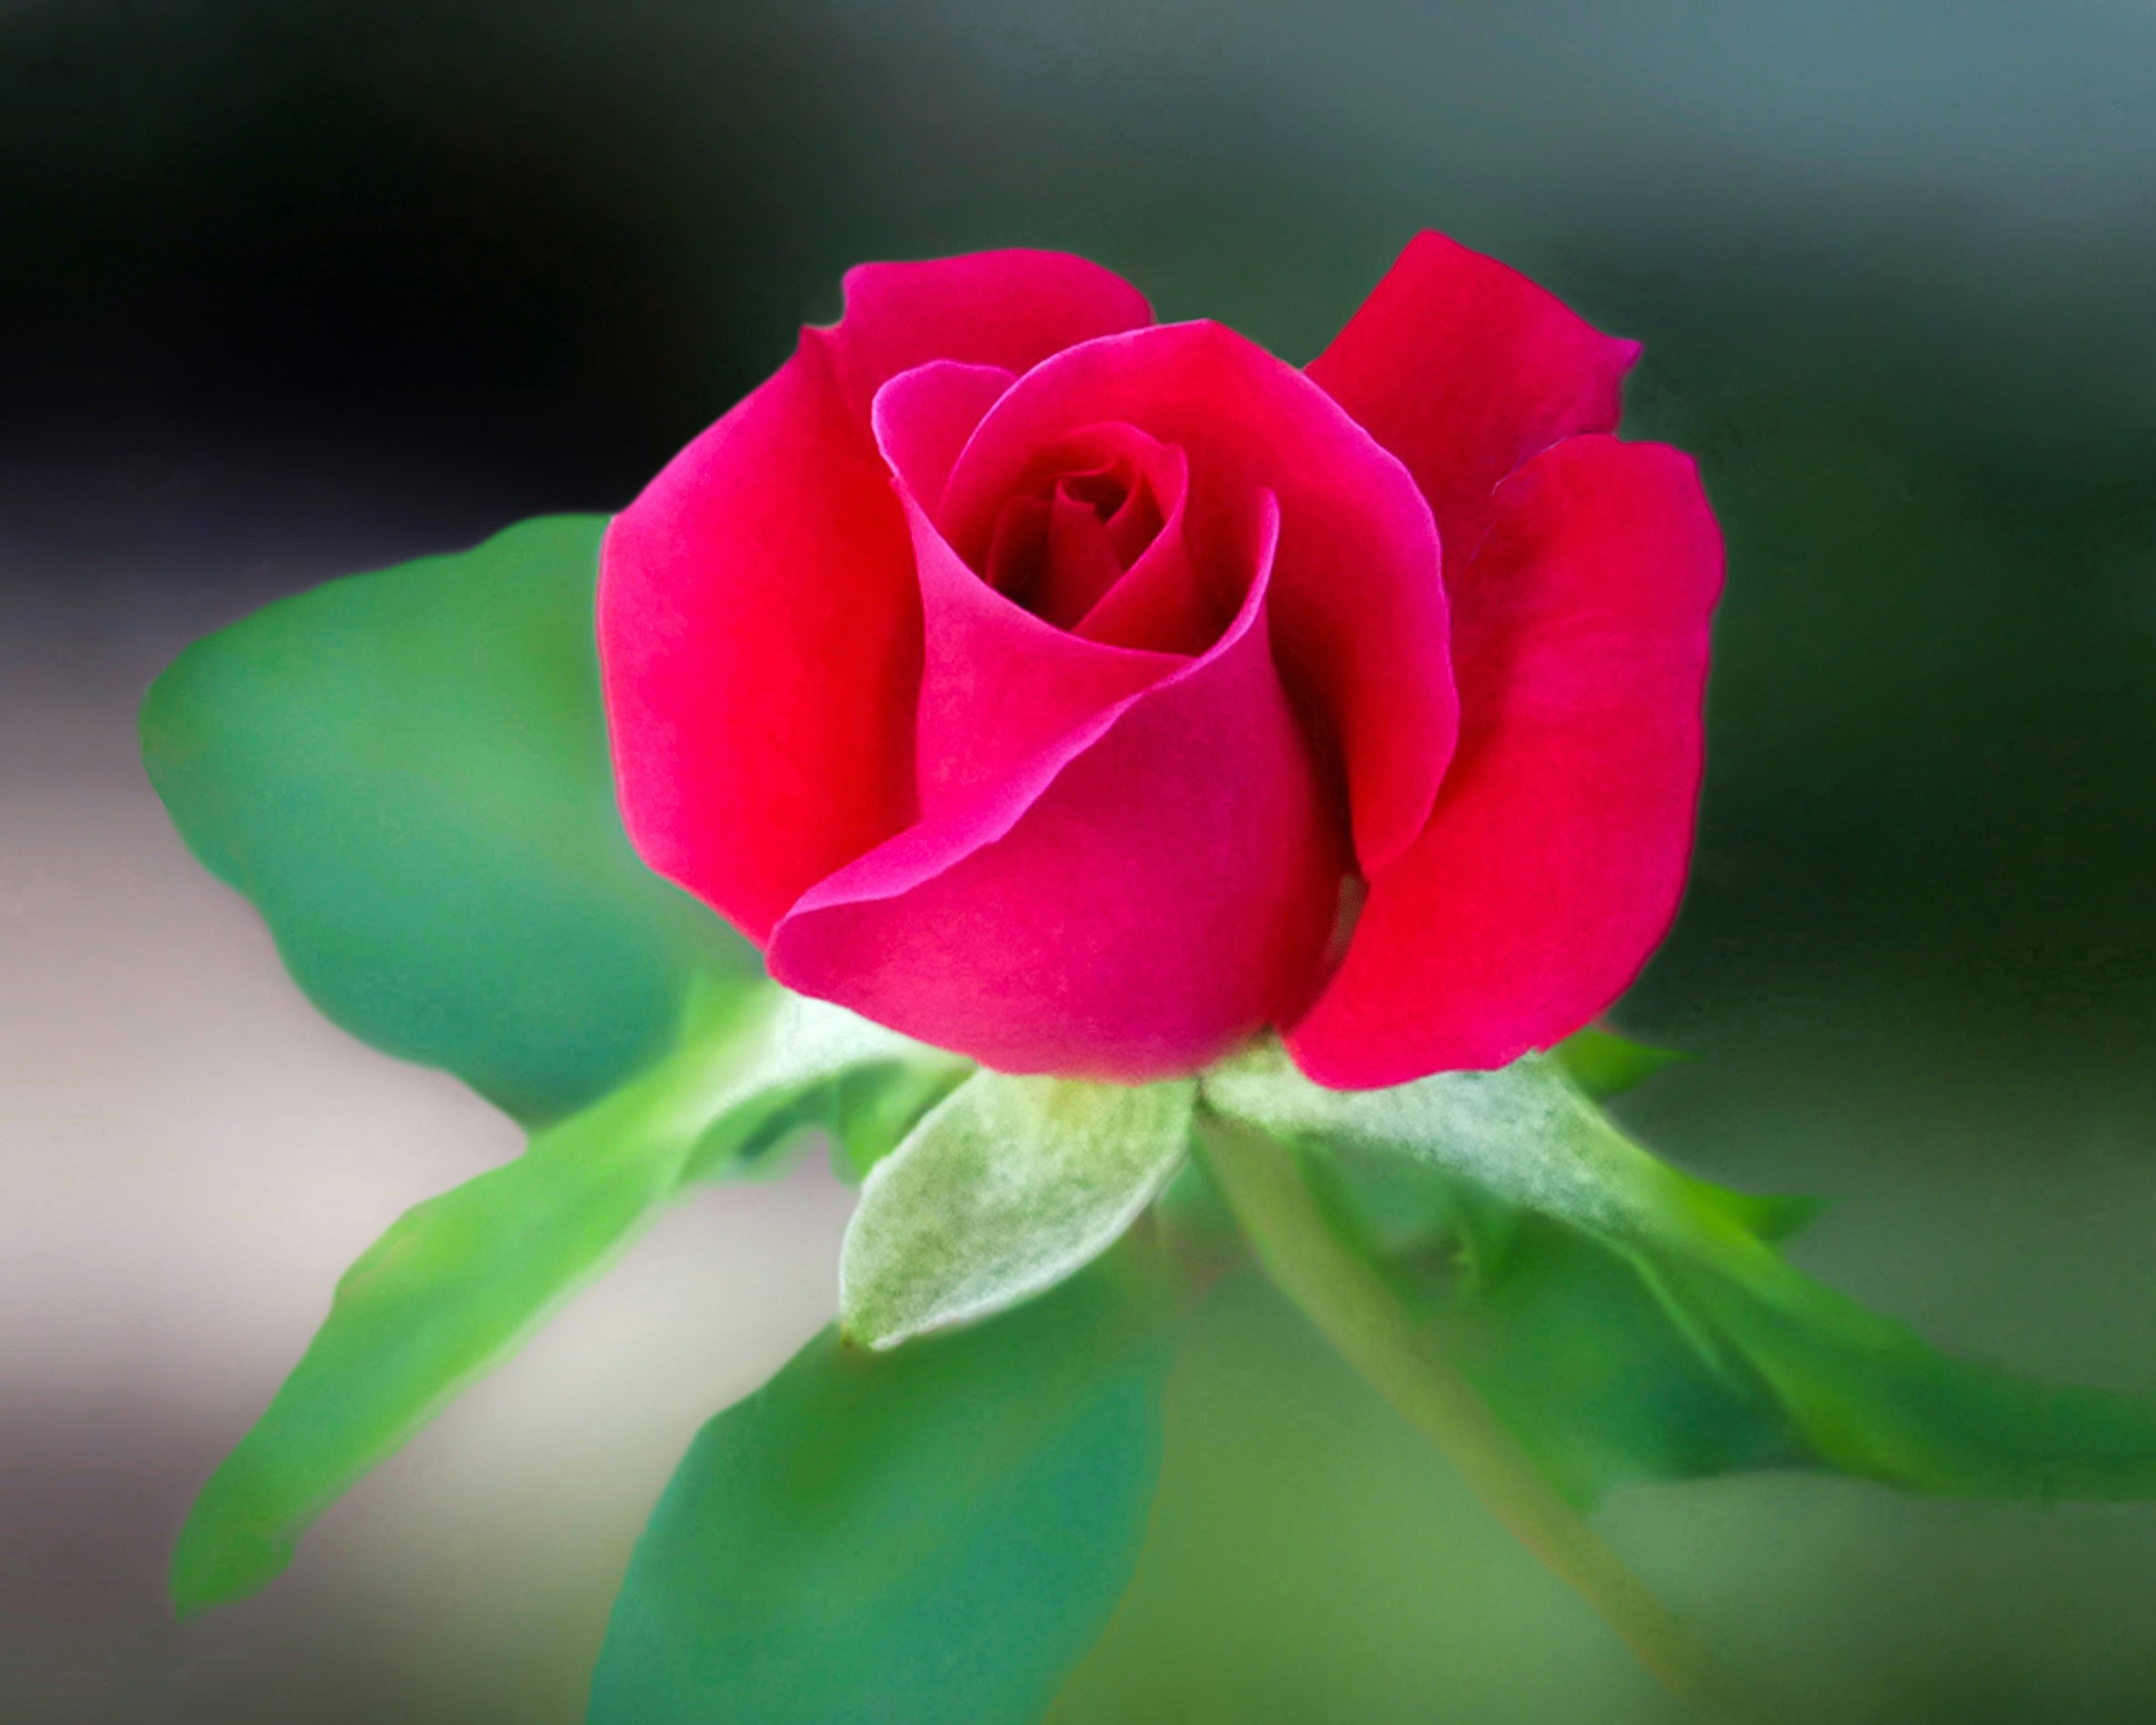 Red Rose Flower Free Stock Photo